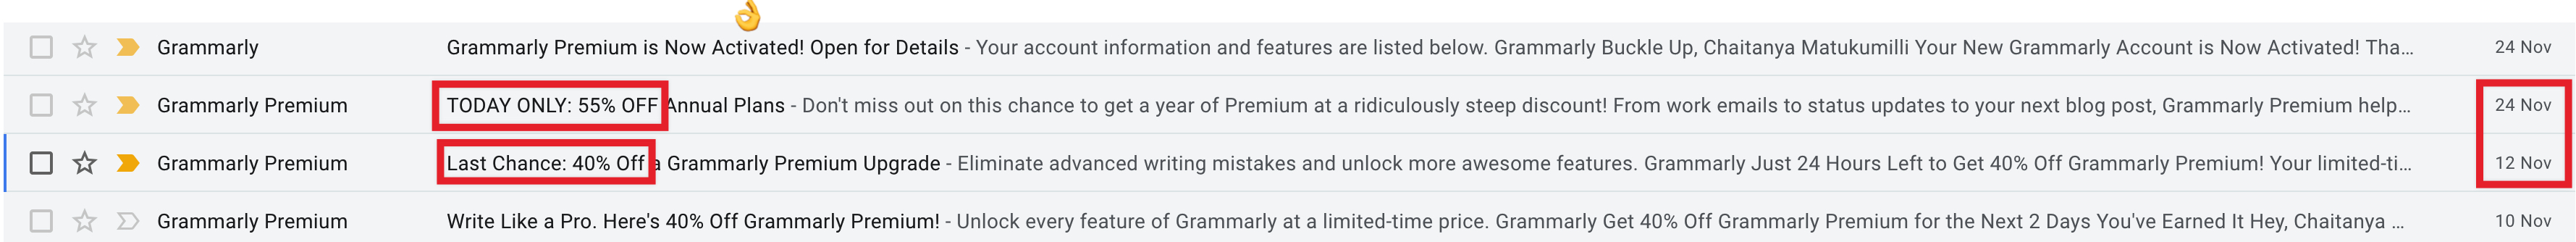 Grammarly promotional email